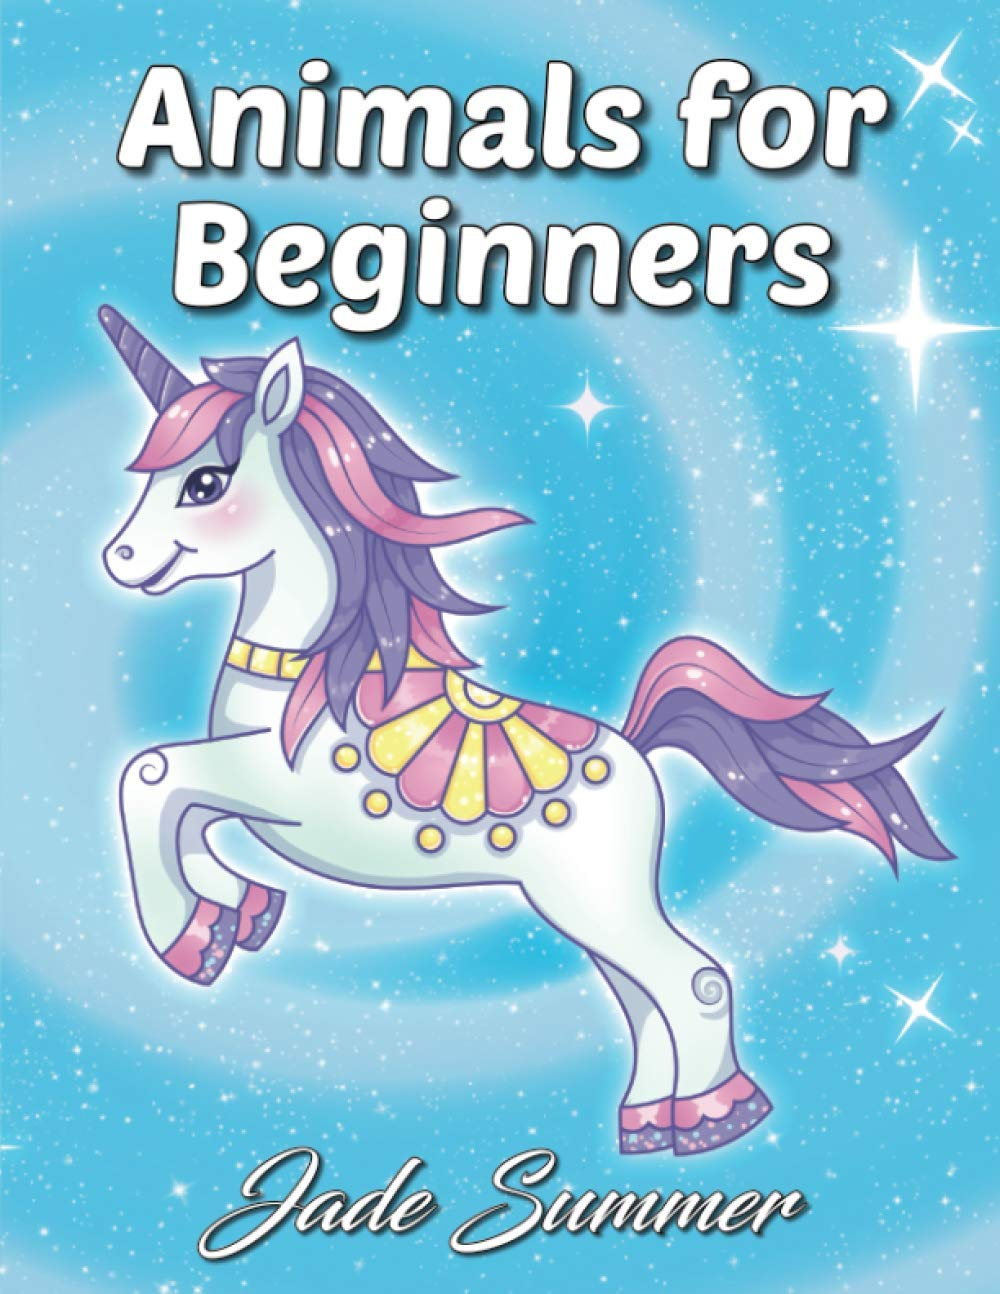 Amazon Com Animals For Beginners An Adult Coloring Book With Fun Easy And Relaxing Coloring Pages 9781979630610 Summer Jade Books